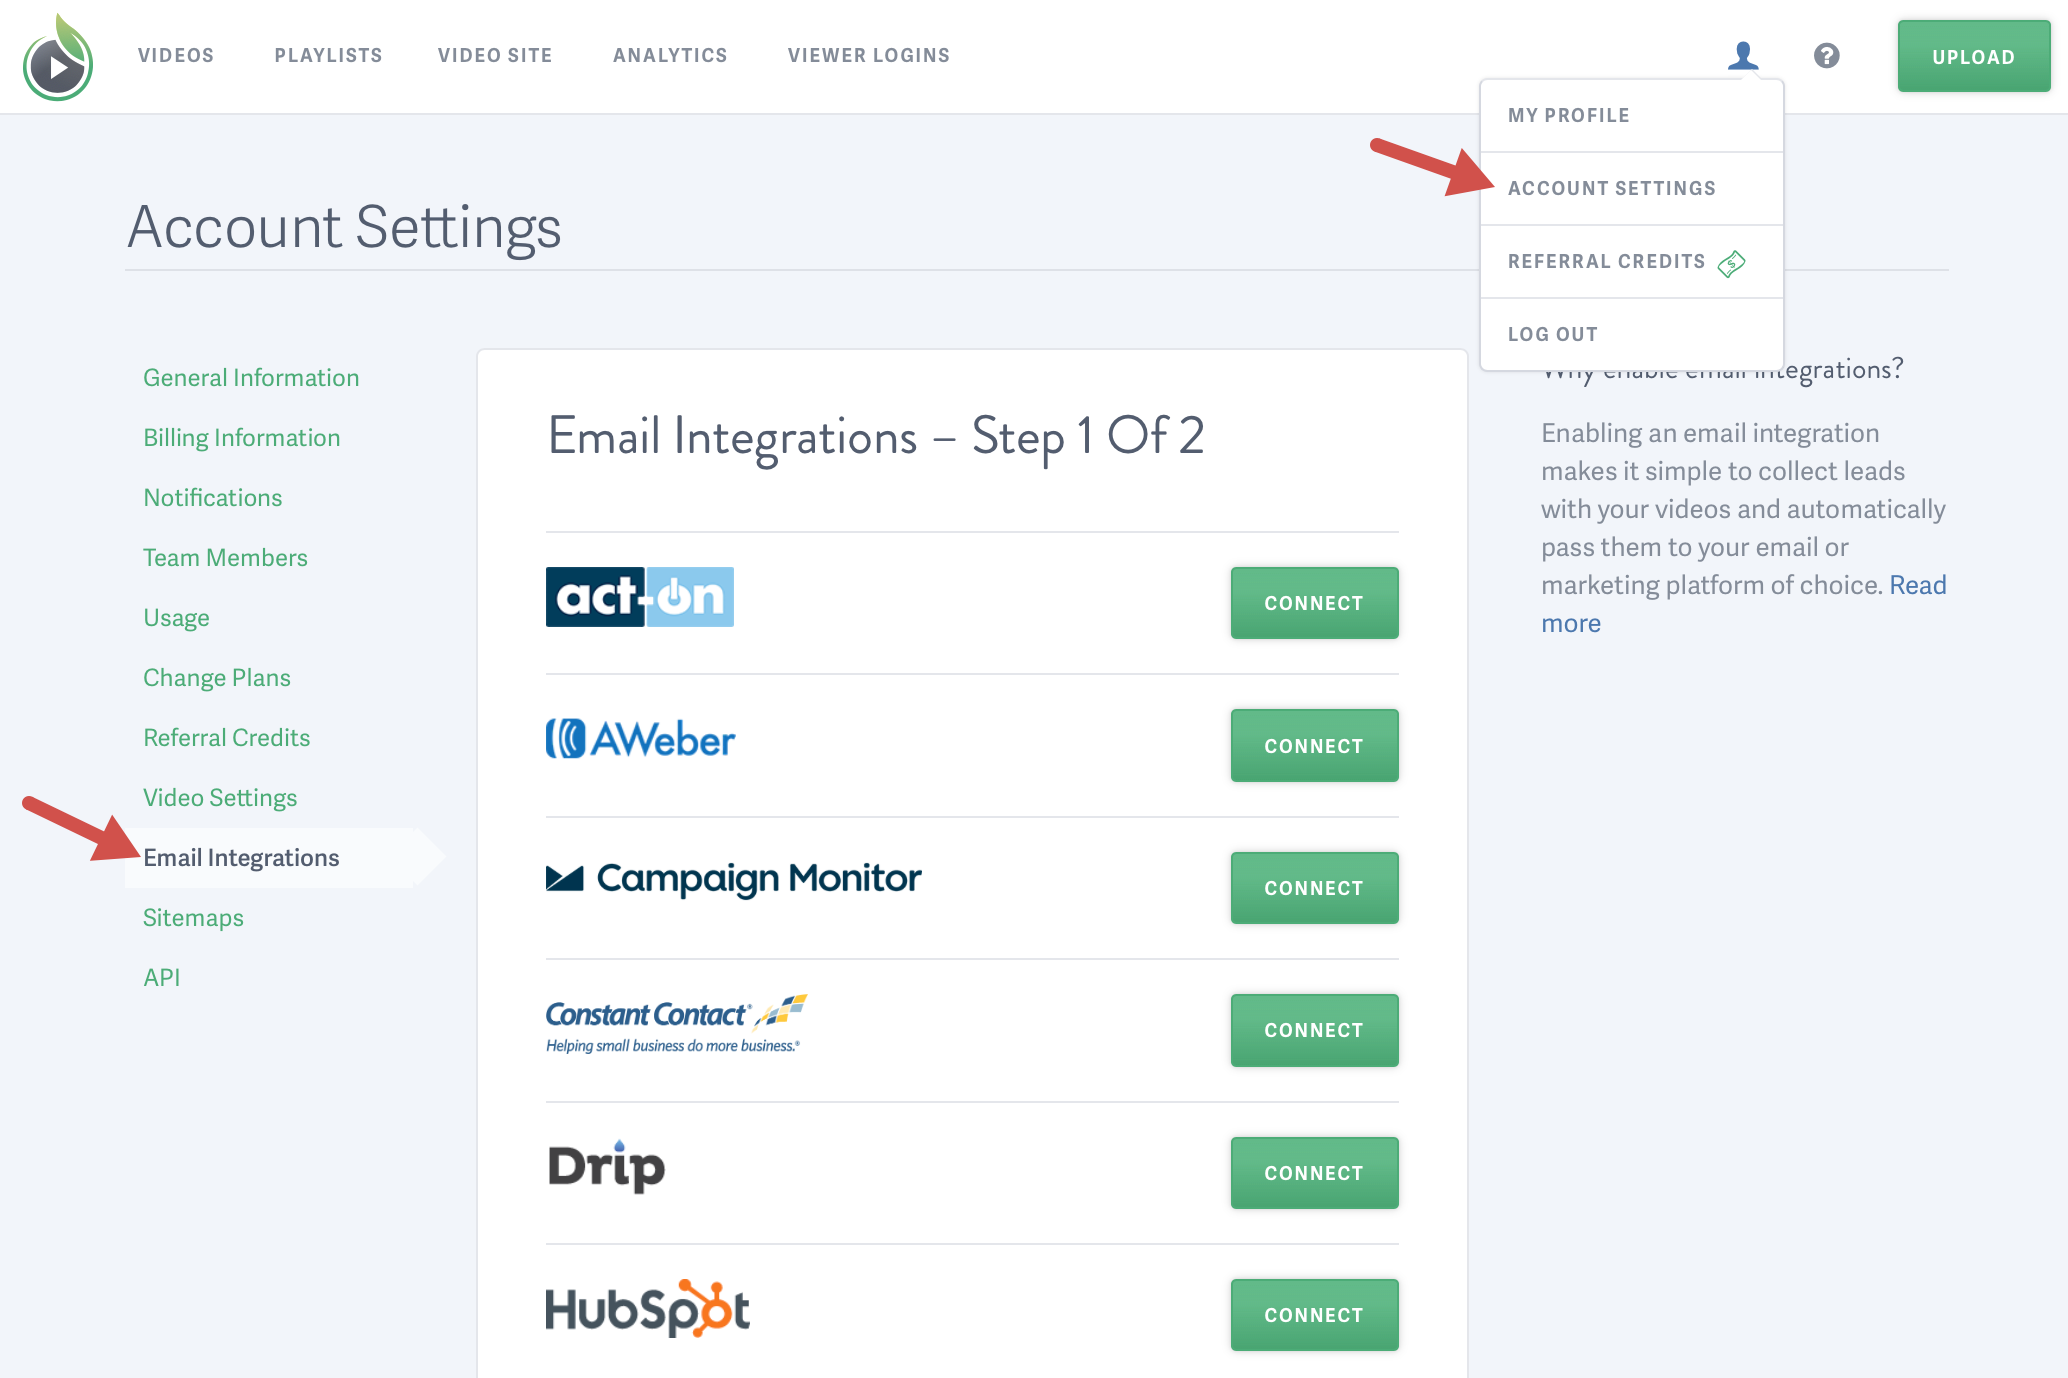 How to find Email integrations